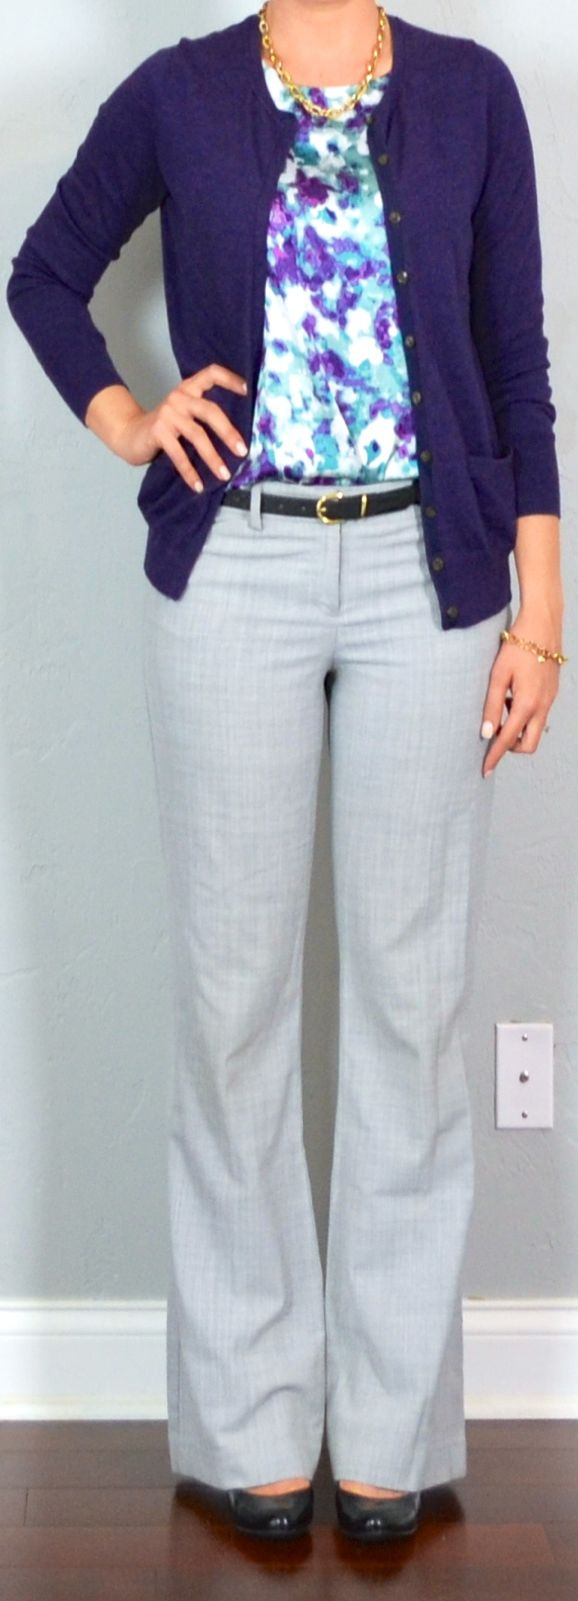 Outfit Posts: outfit post: purple floral camisole, purple cardigan, grey editor pants, black wedges